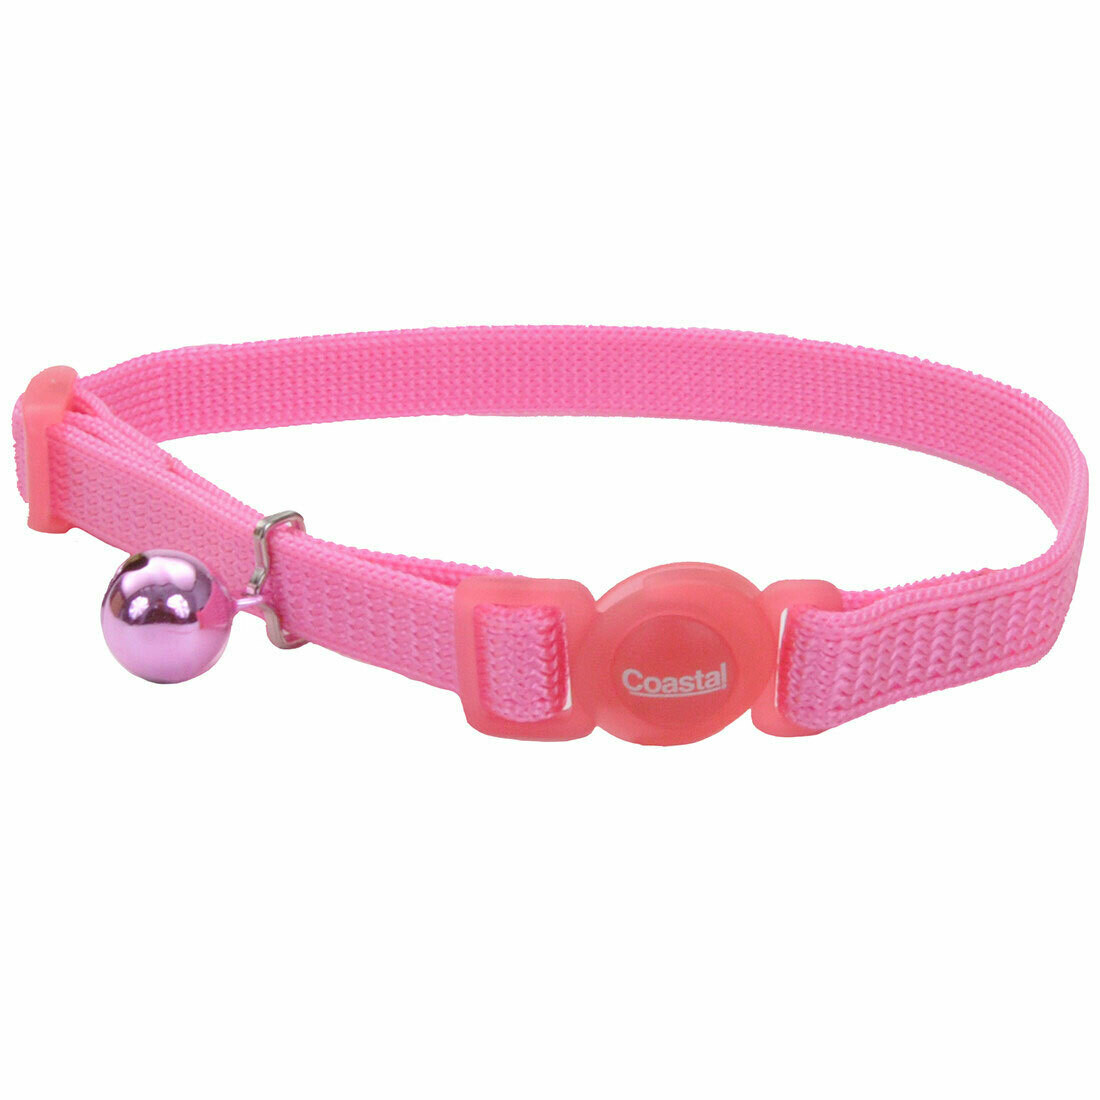 Safe Cat Collar Breakaway Light Pink 12""